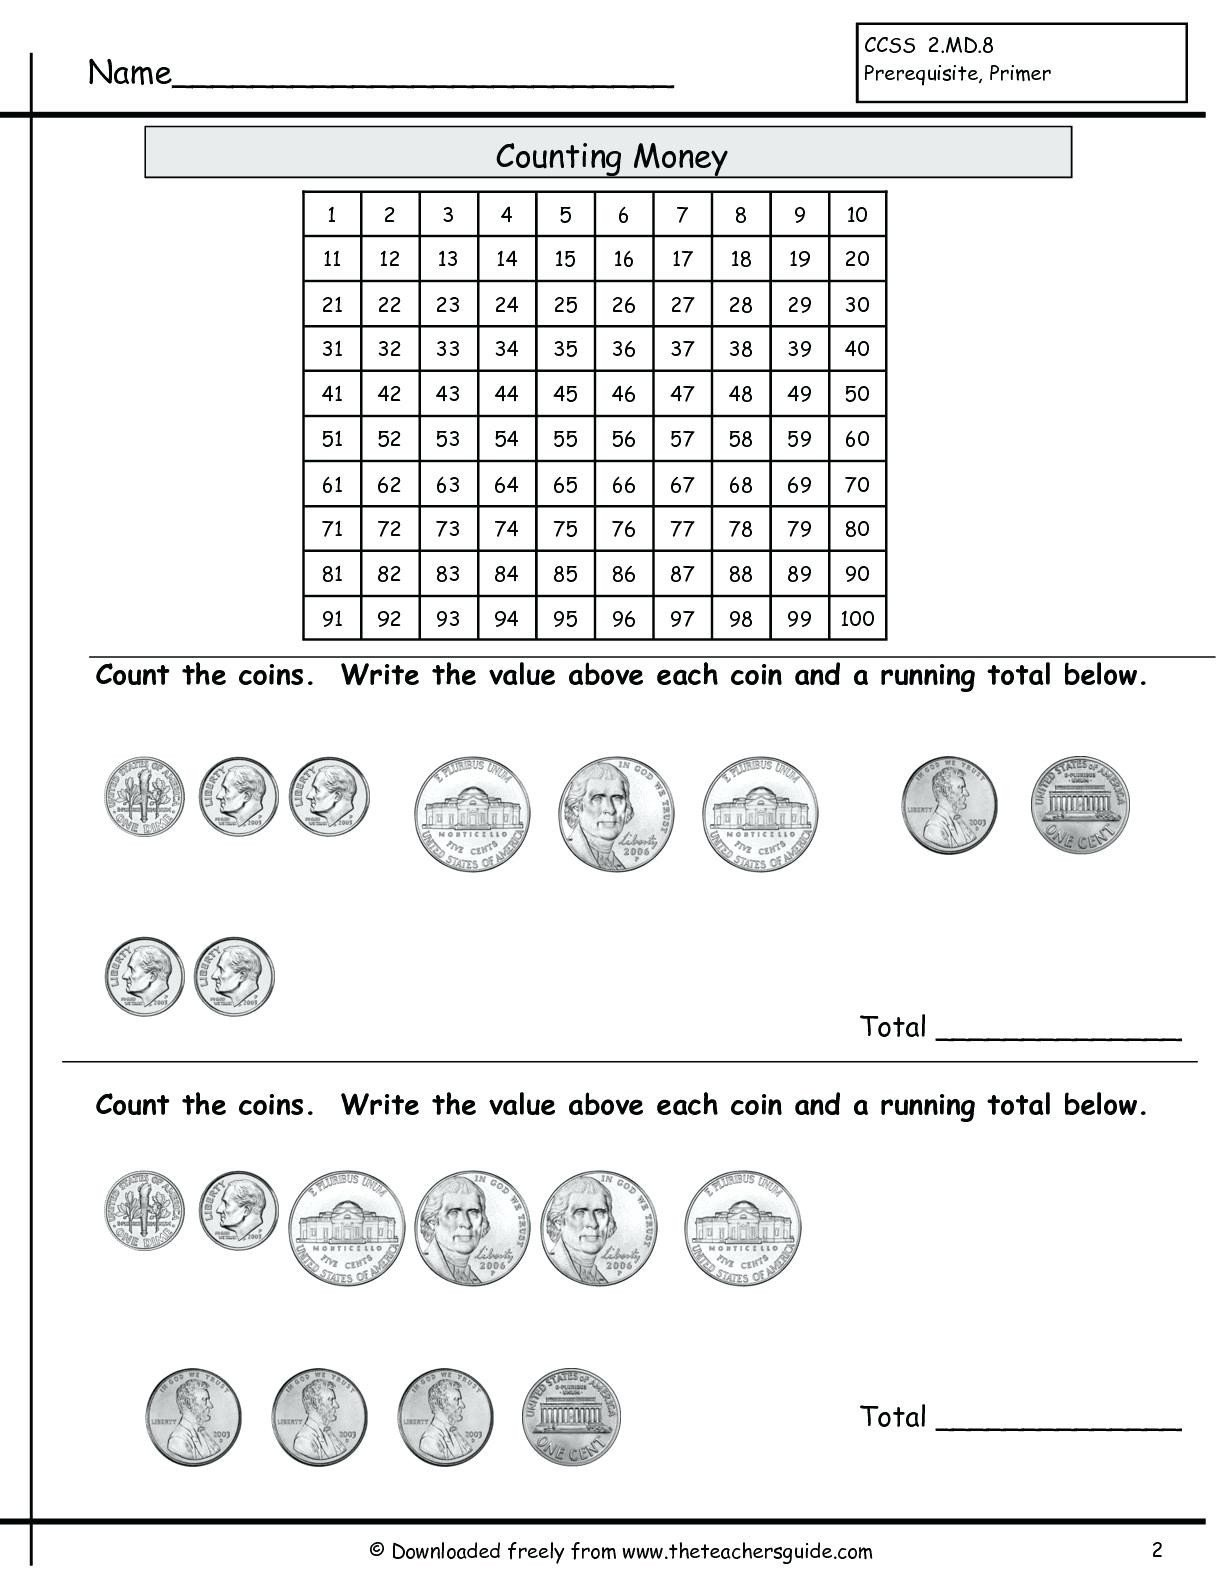 free math worksheets second grade 2 measurement metric units length cm m of free math worksheets second grade 2 measurement metric units length cm m 1